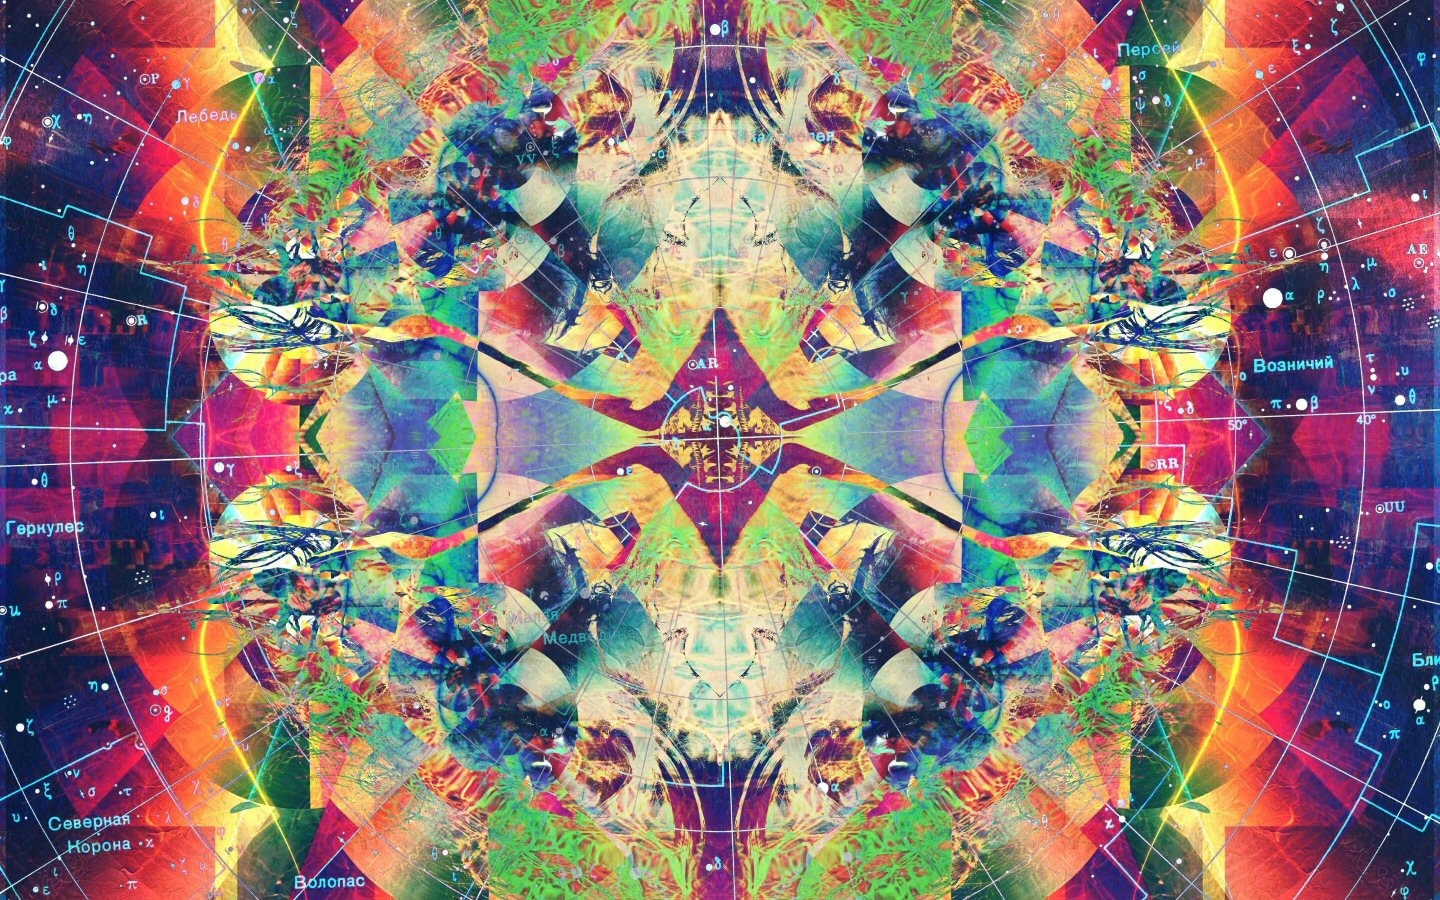 abstract-multicolor-psychedelic-trippy-russians-hd-wallpapers-backgrounds-1422735191